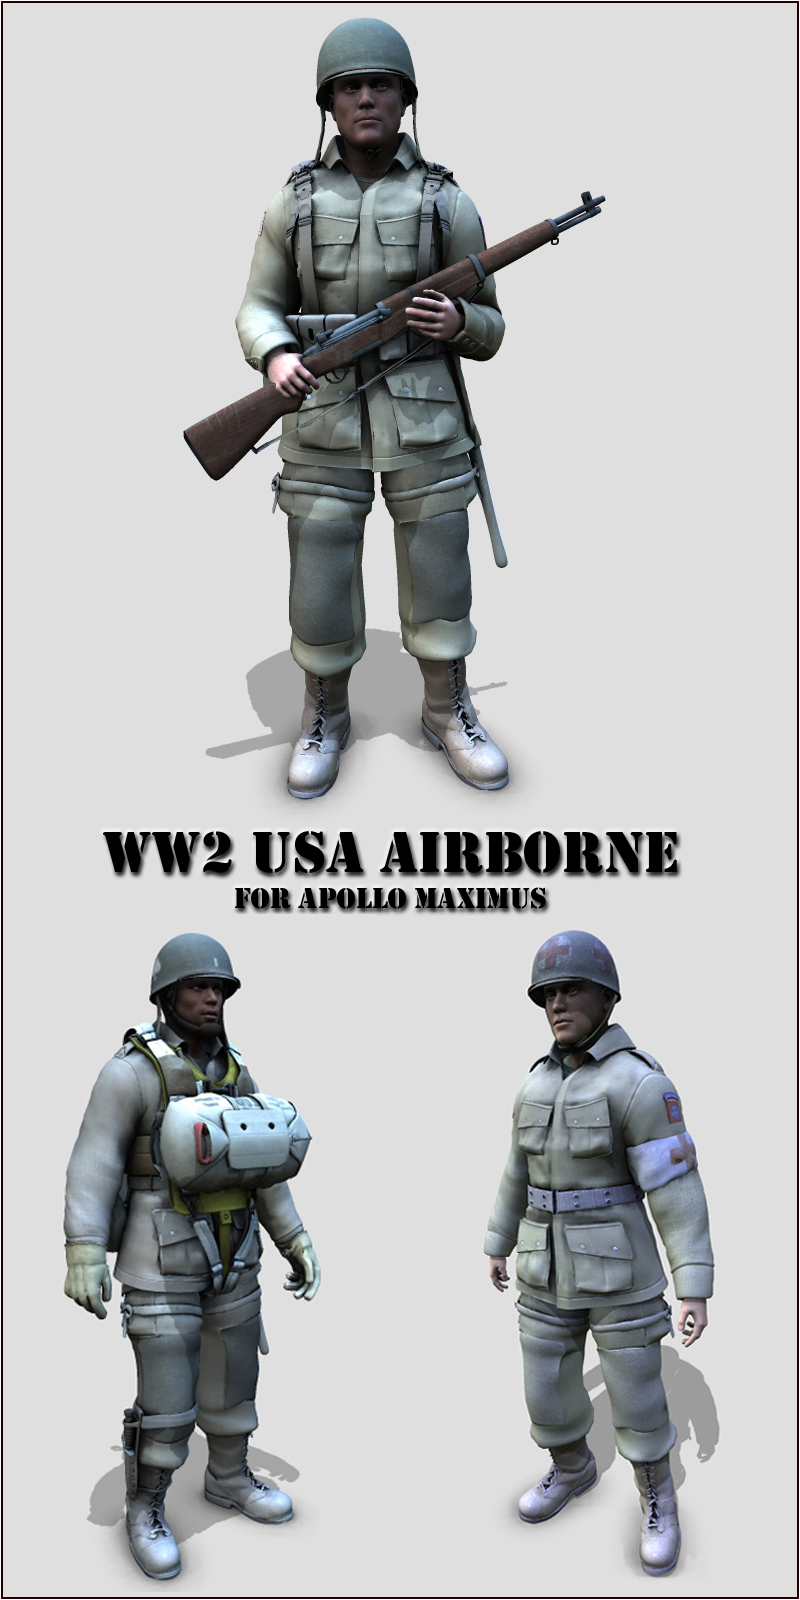 WW2 USA airborne